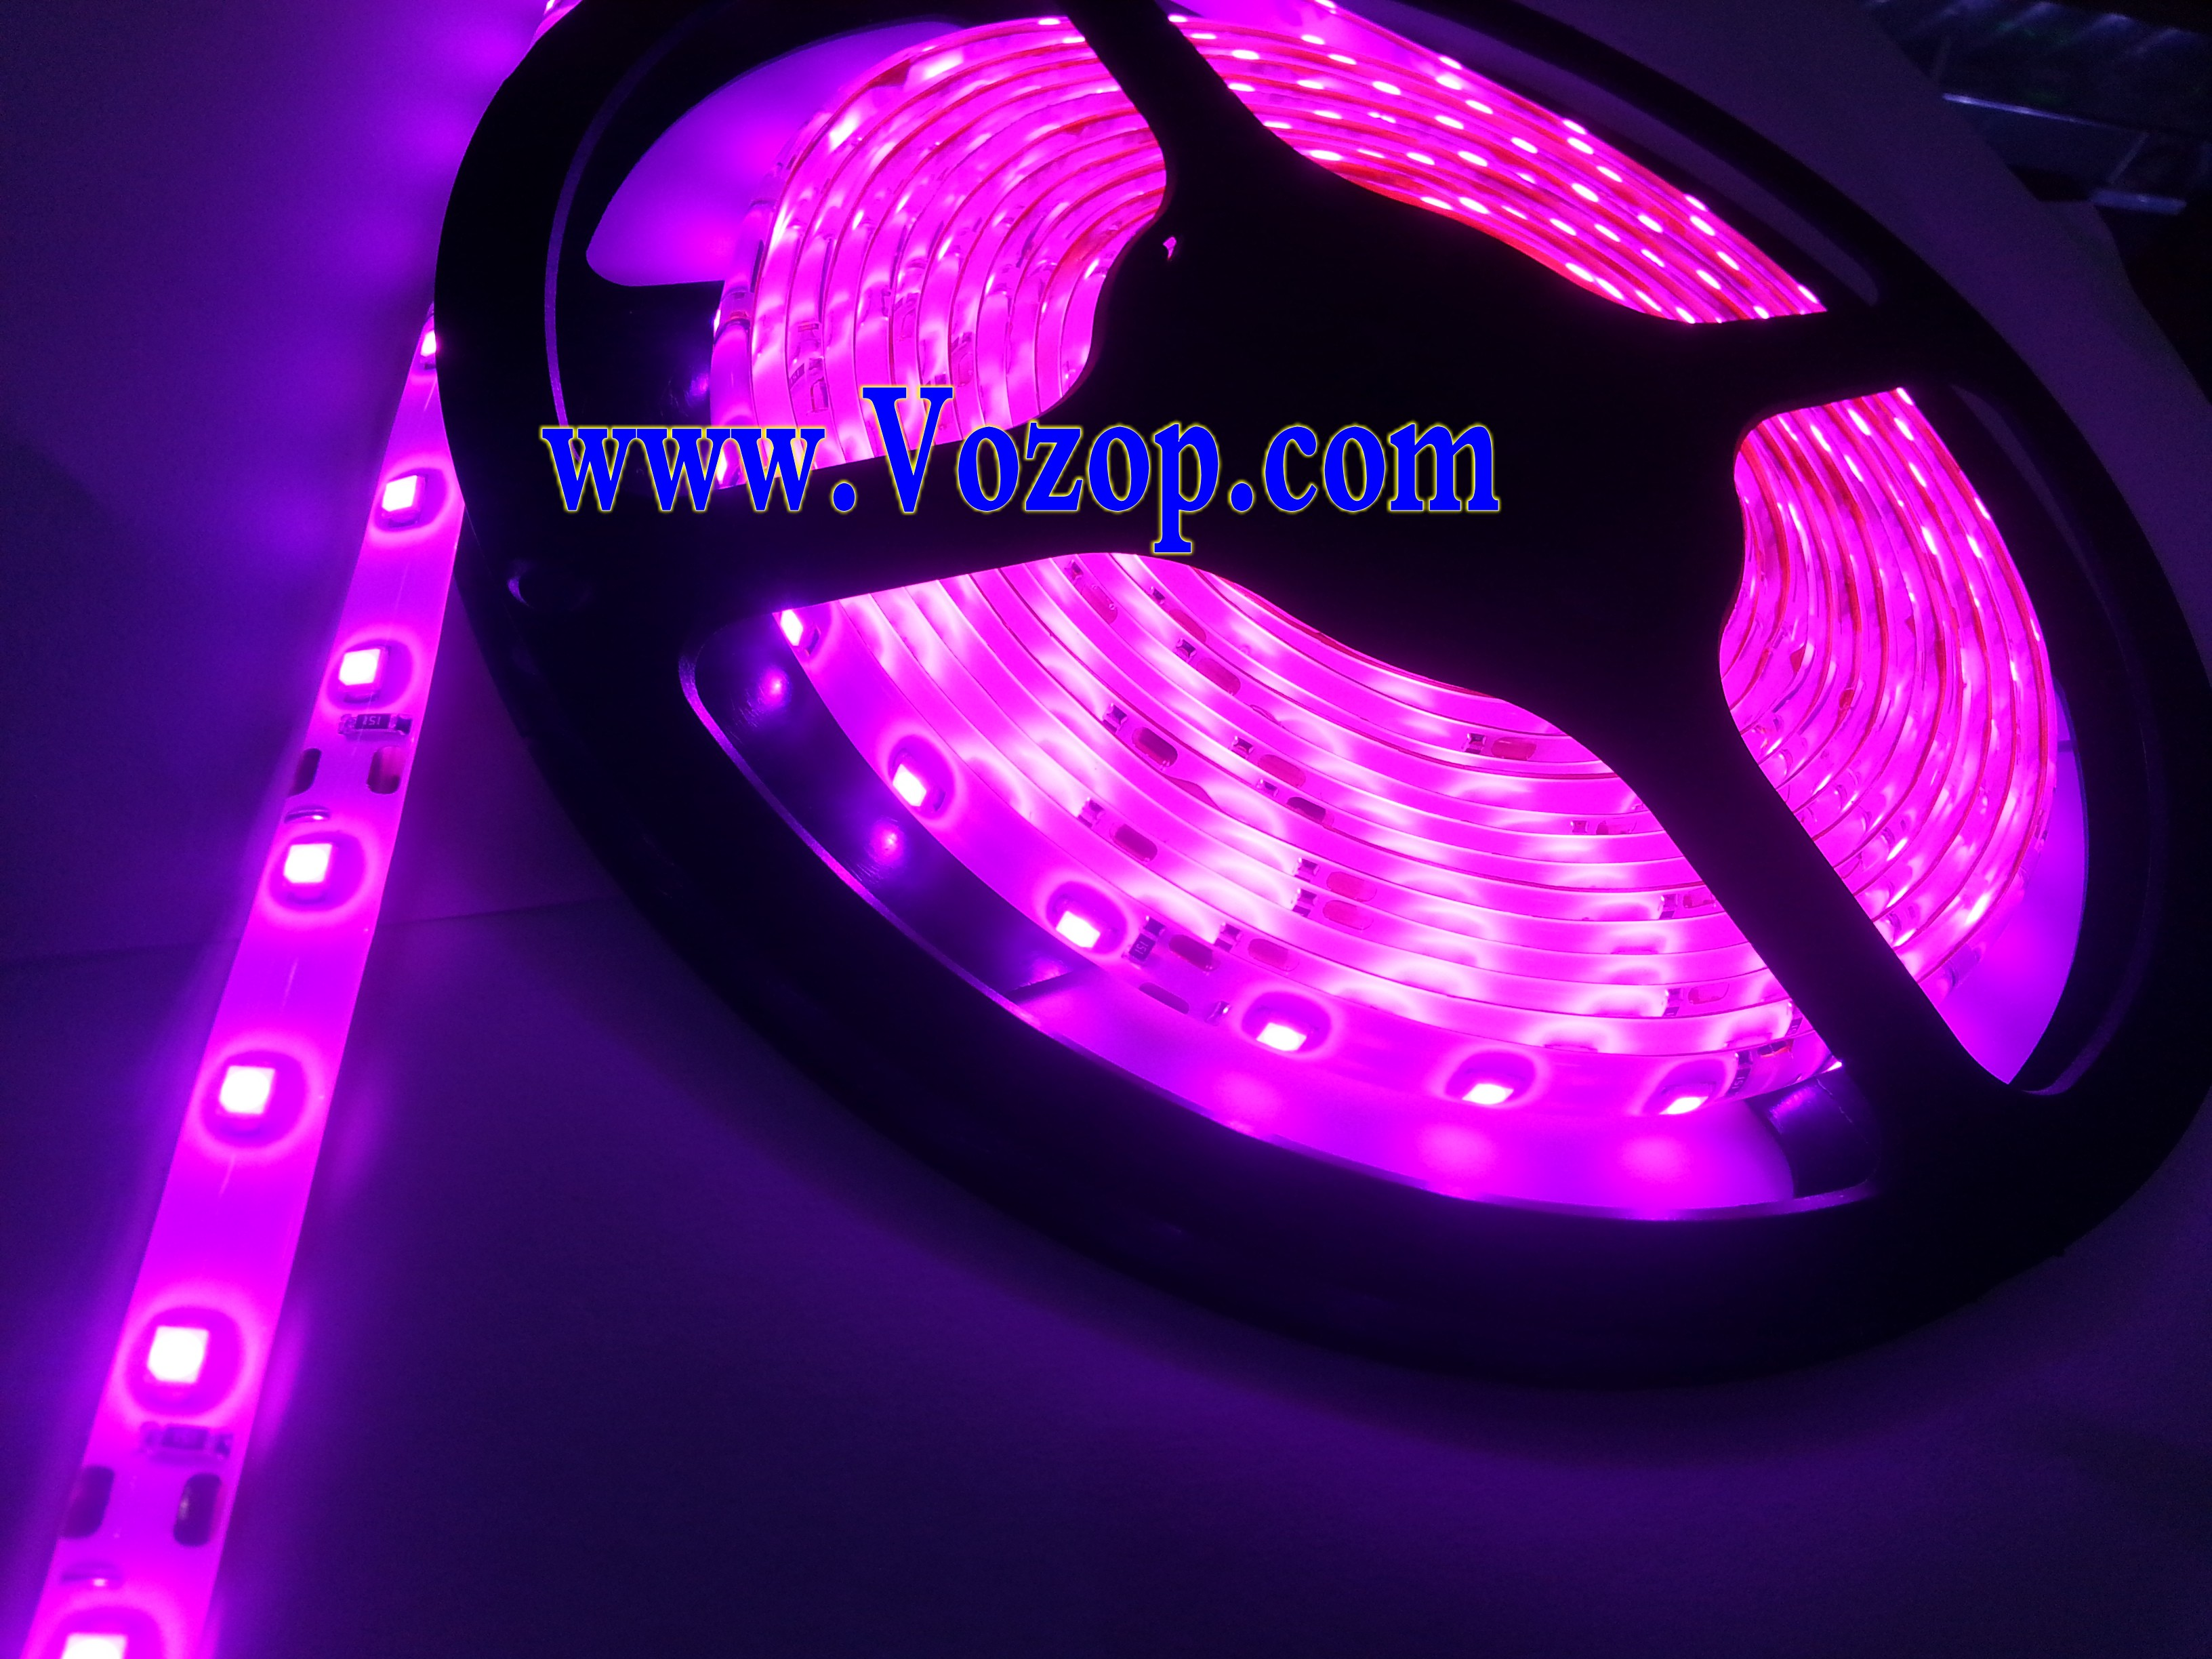 12v smd3528 led light strip 5m 300 leds waterproof ribbon led strips led controllers led. Black Bedroom Furniture Sets. Home Design Ideas